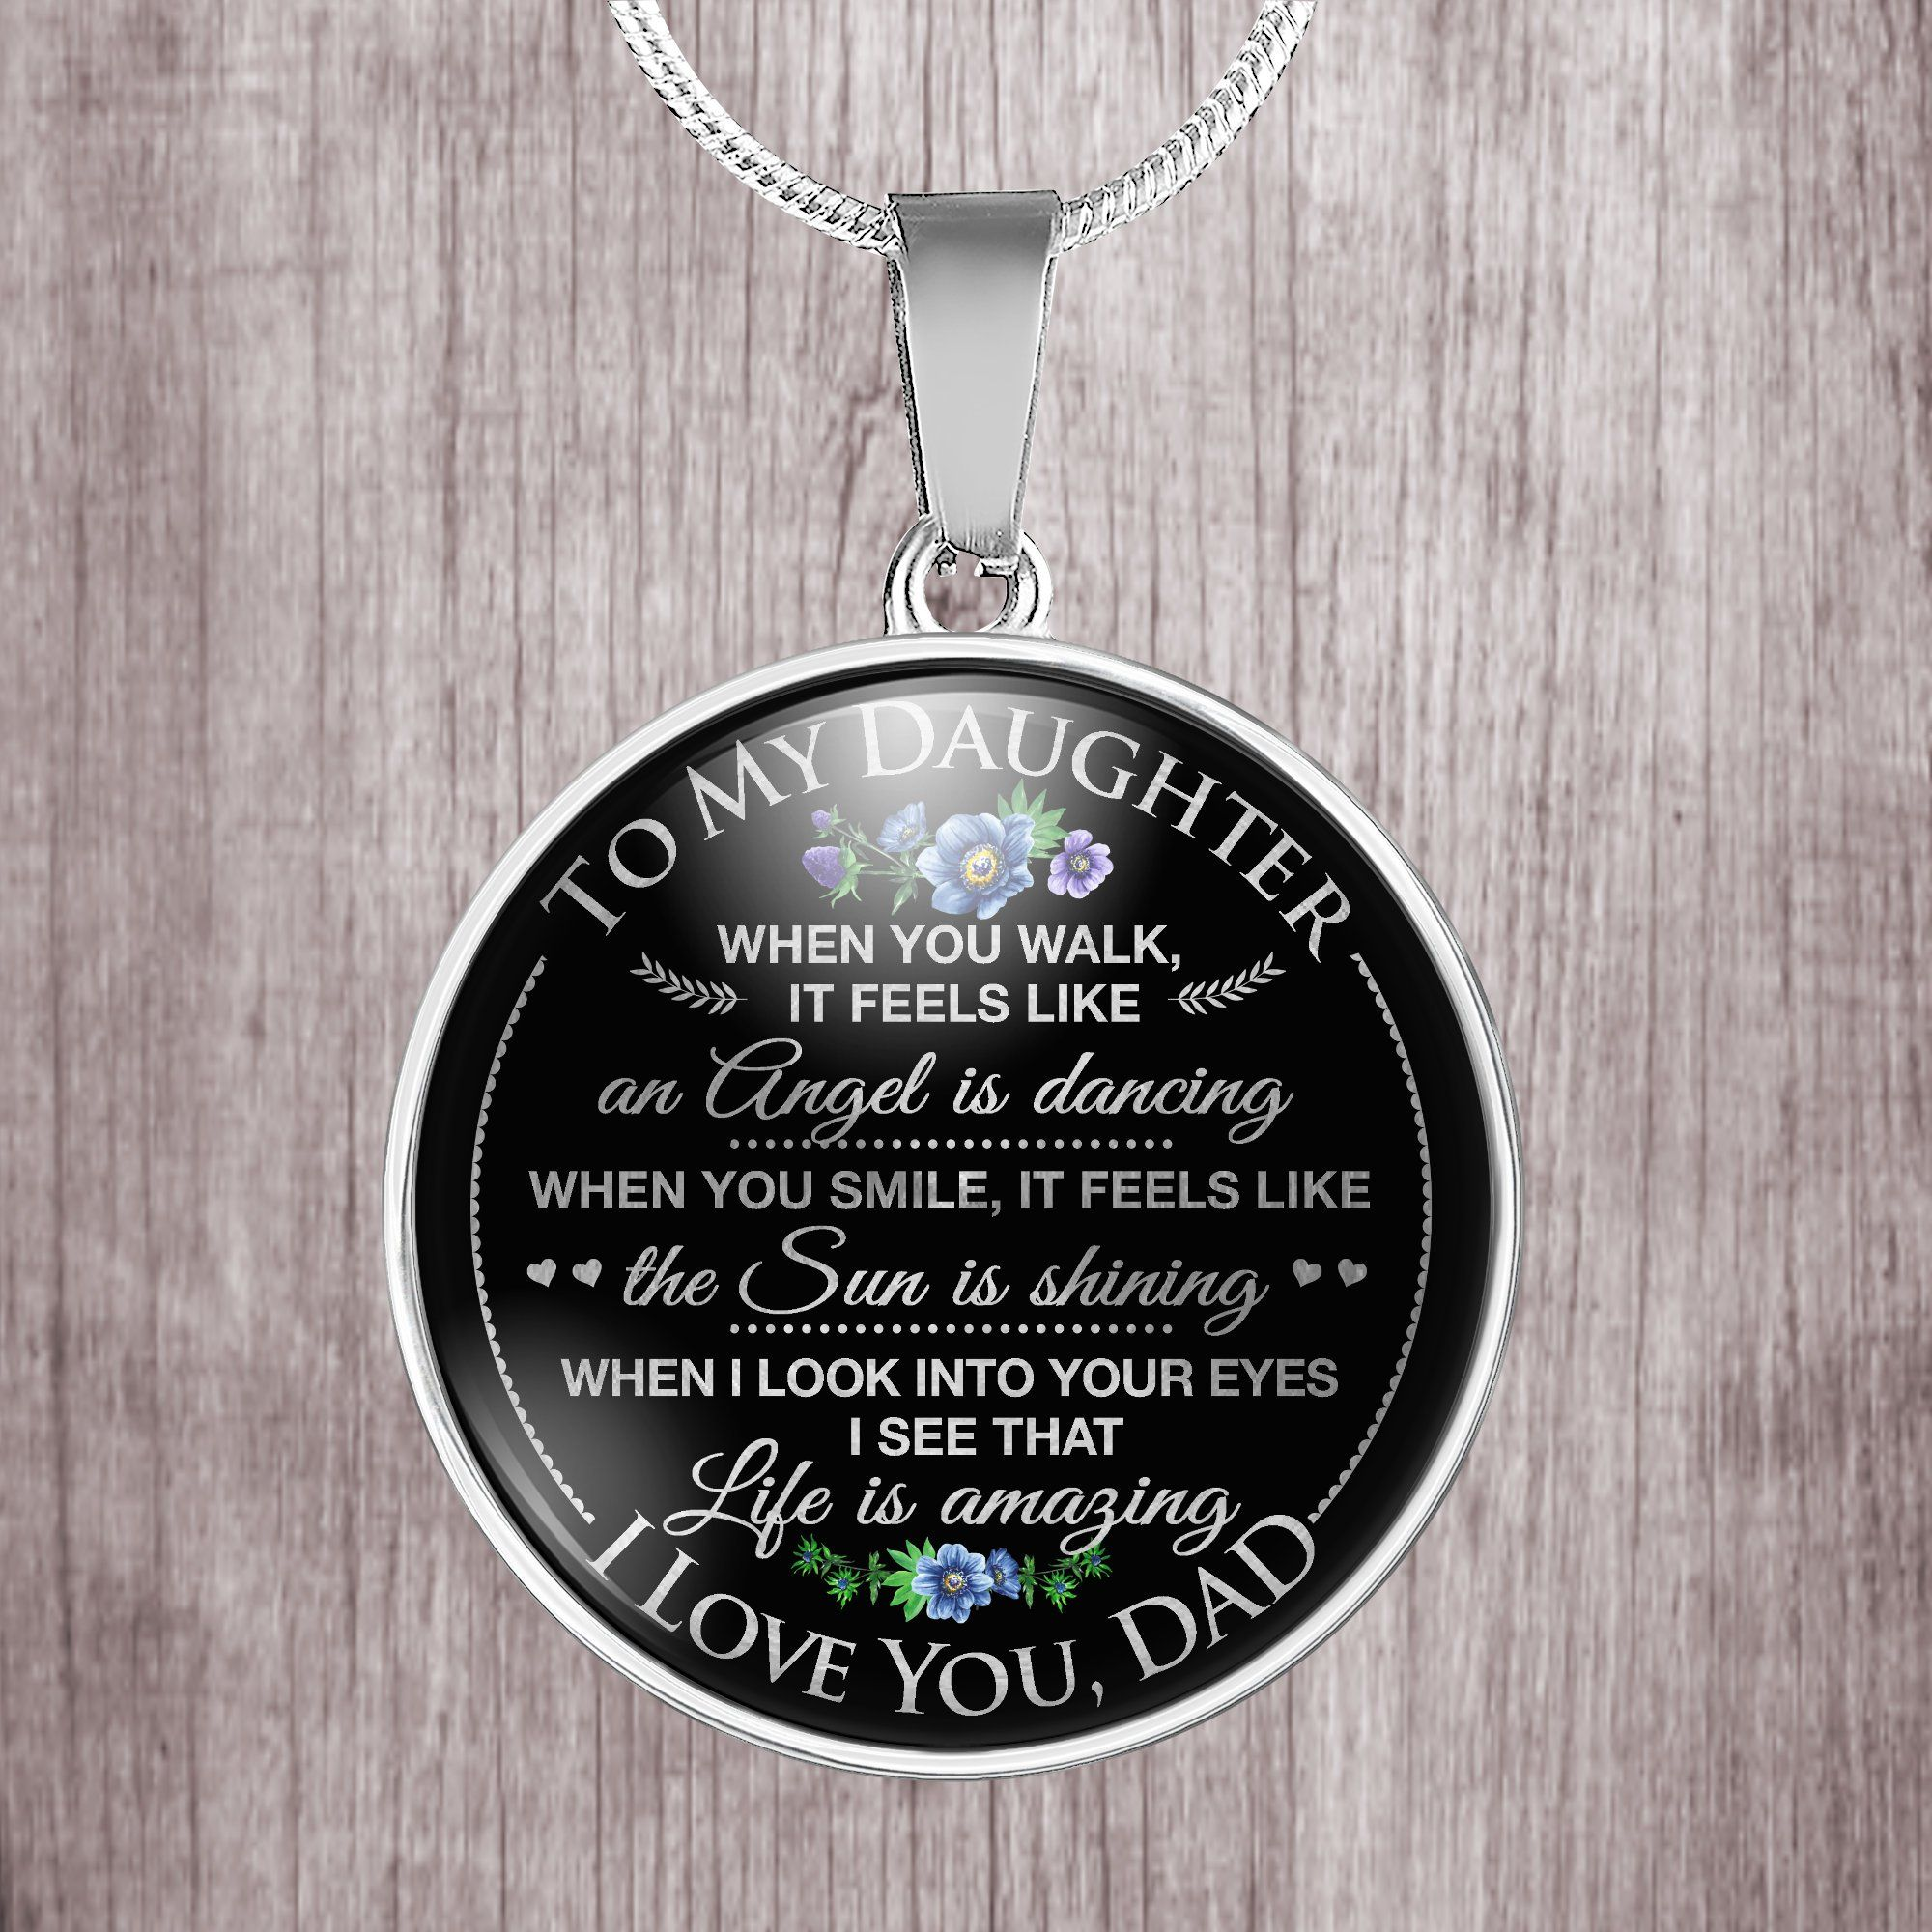 To my daughter I see as an angel dancing stainless steel necklace  #art #design #gifts #giftguide #gift #giftideas #birthday #designtimegnc #handmade #gifting